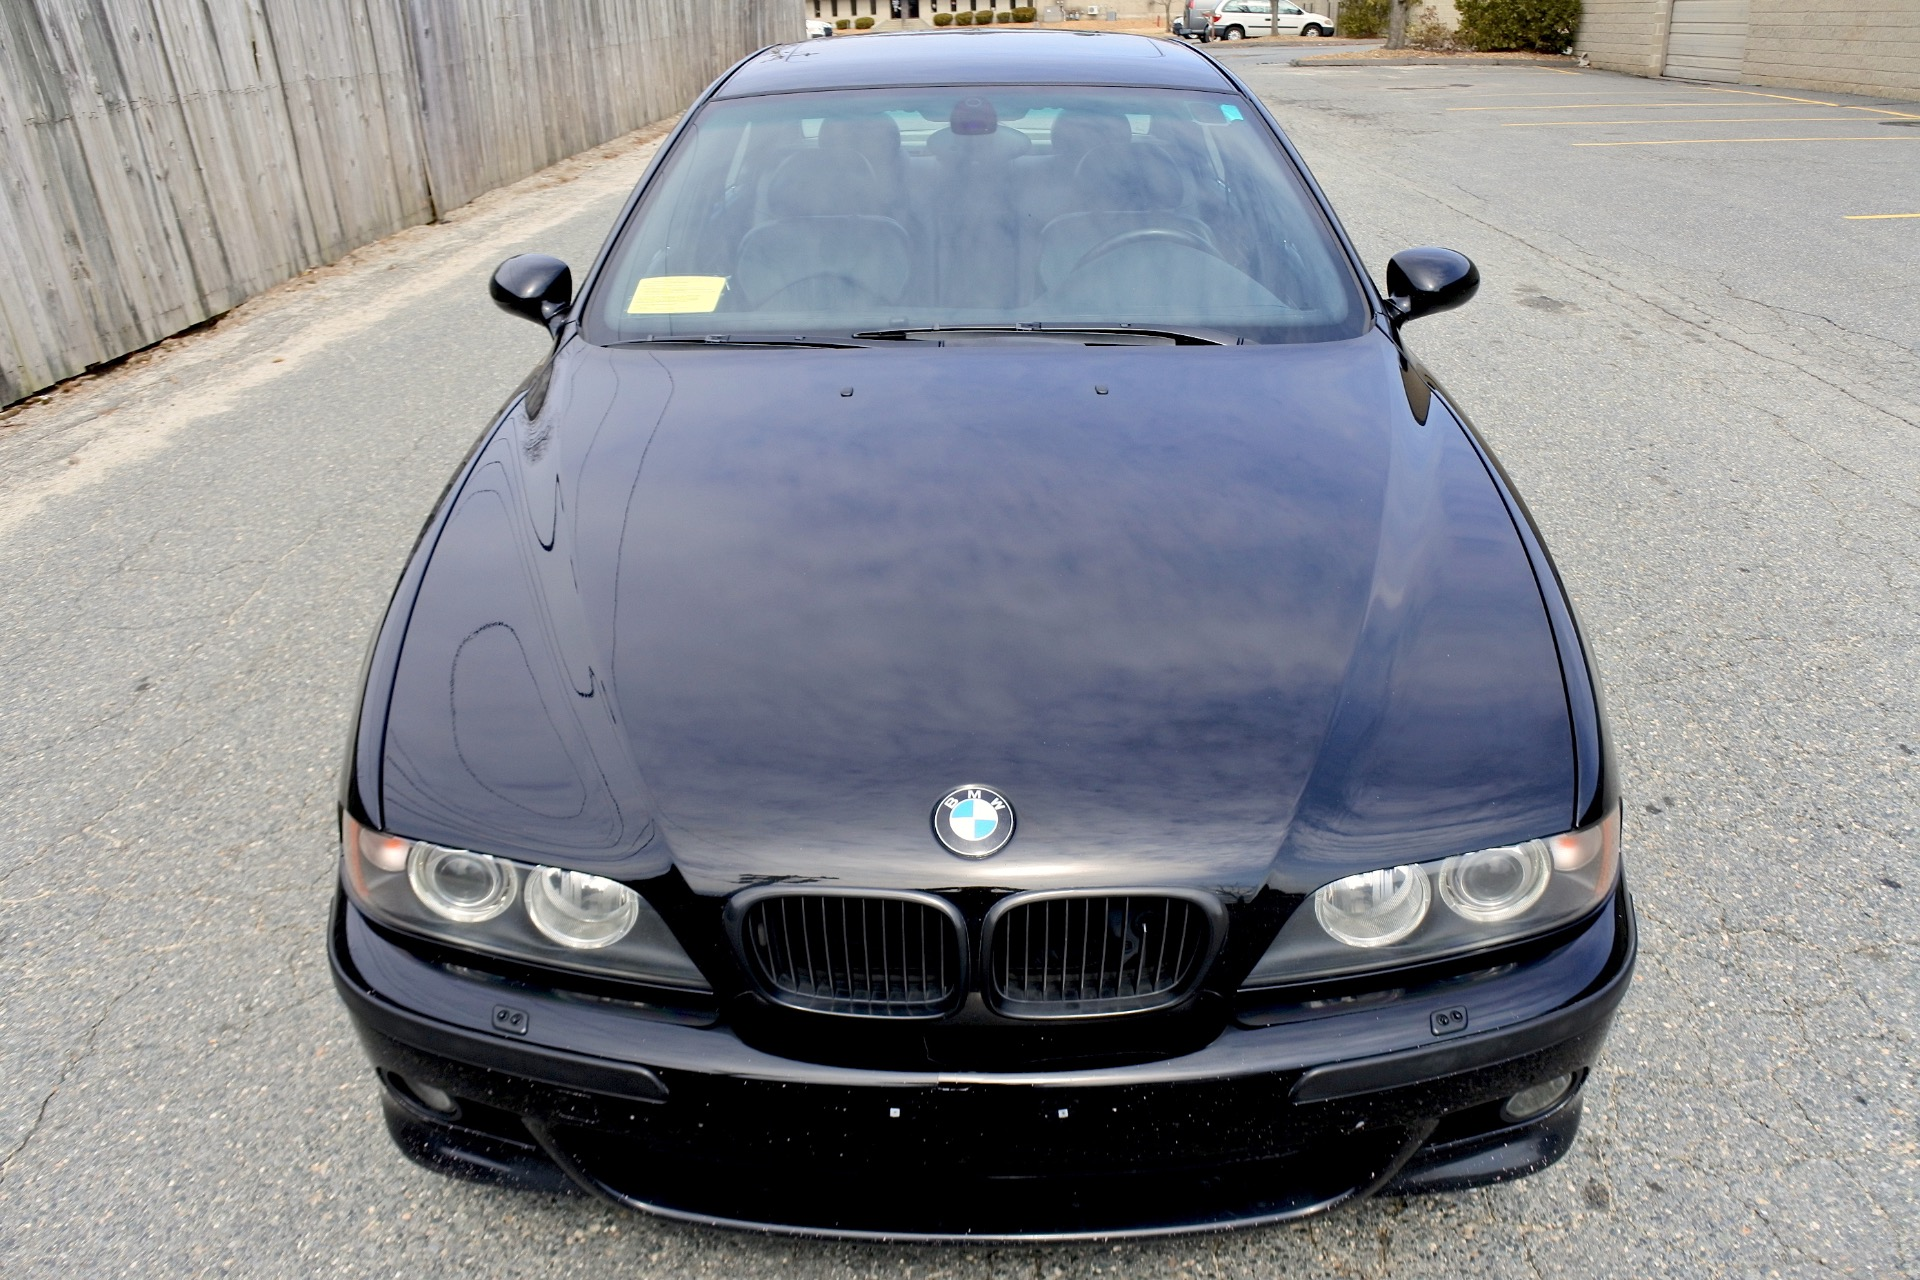 Used 2001 BMW 5 Series M5 4dr Sdn 6-Spd Manual Used 2001 BMW 5 Series M5 4dr Sdn 6-Spd Manual for sale  at Metro West Motorcars LLC in Shrewsbury MA 8